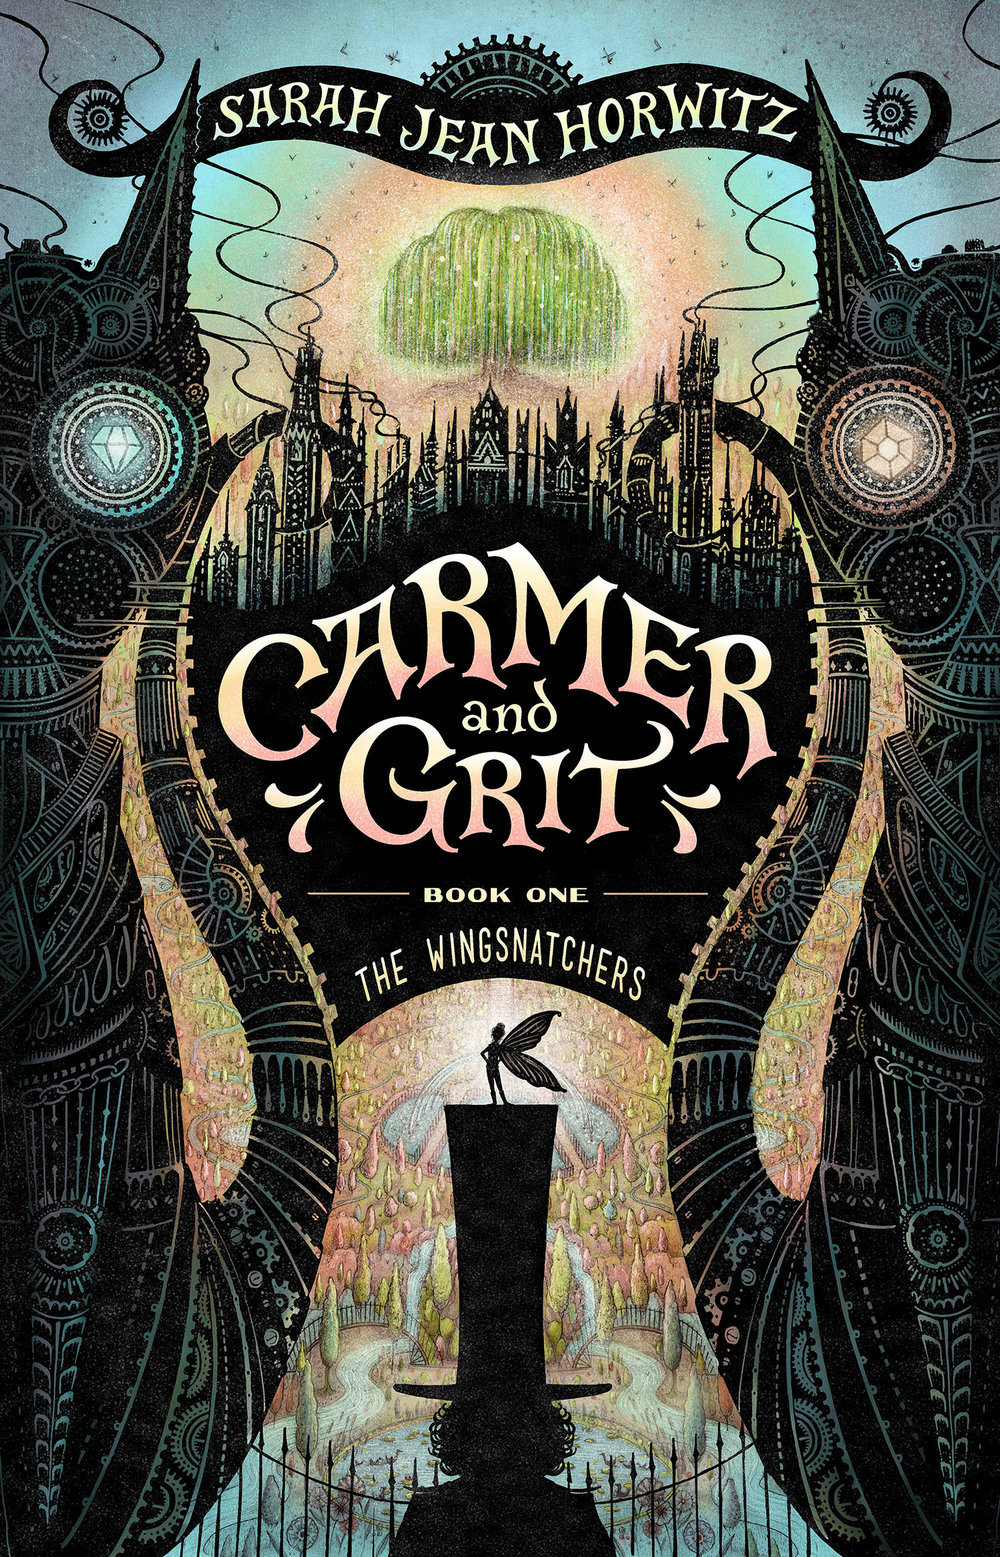 Carmer book cover art.jpg